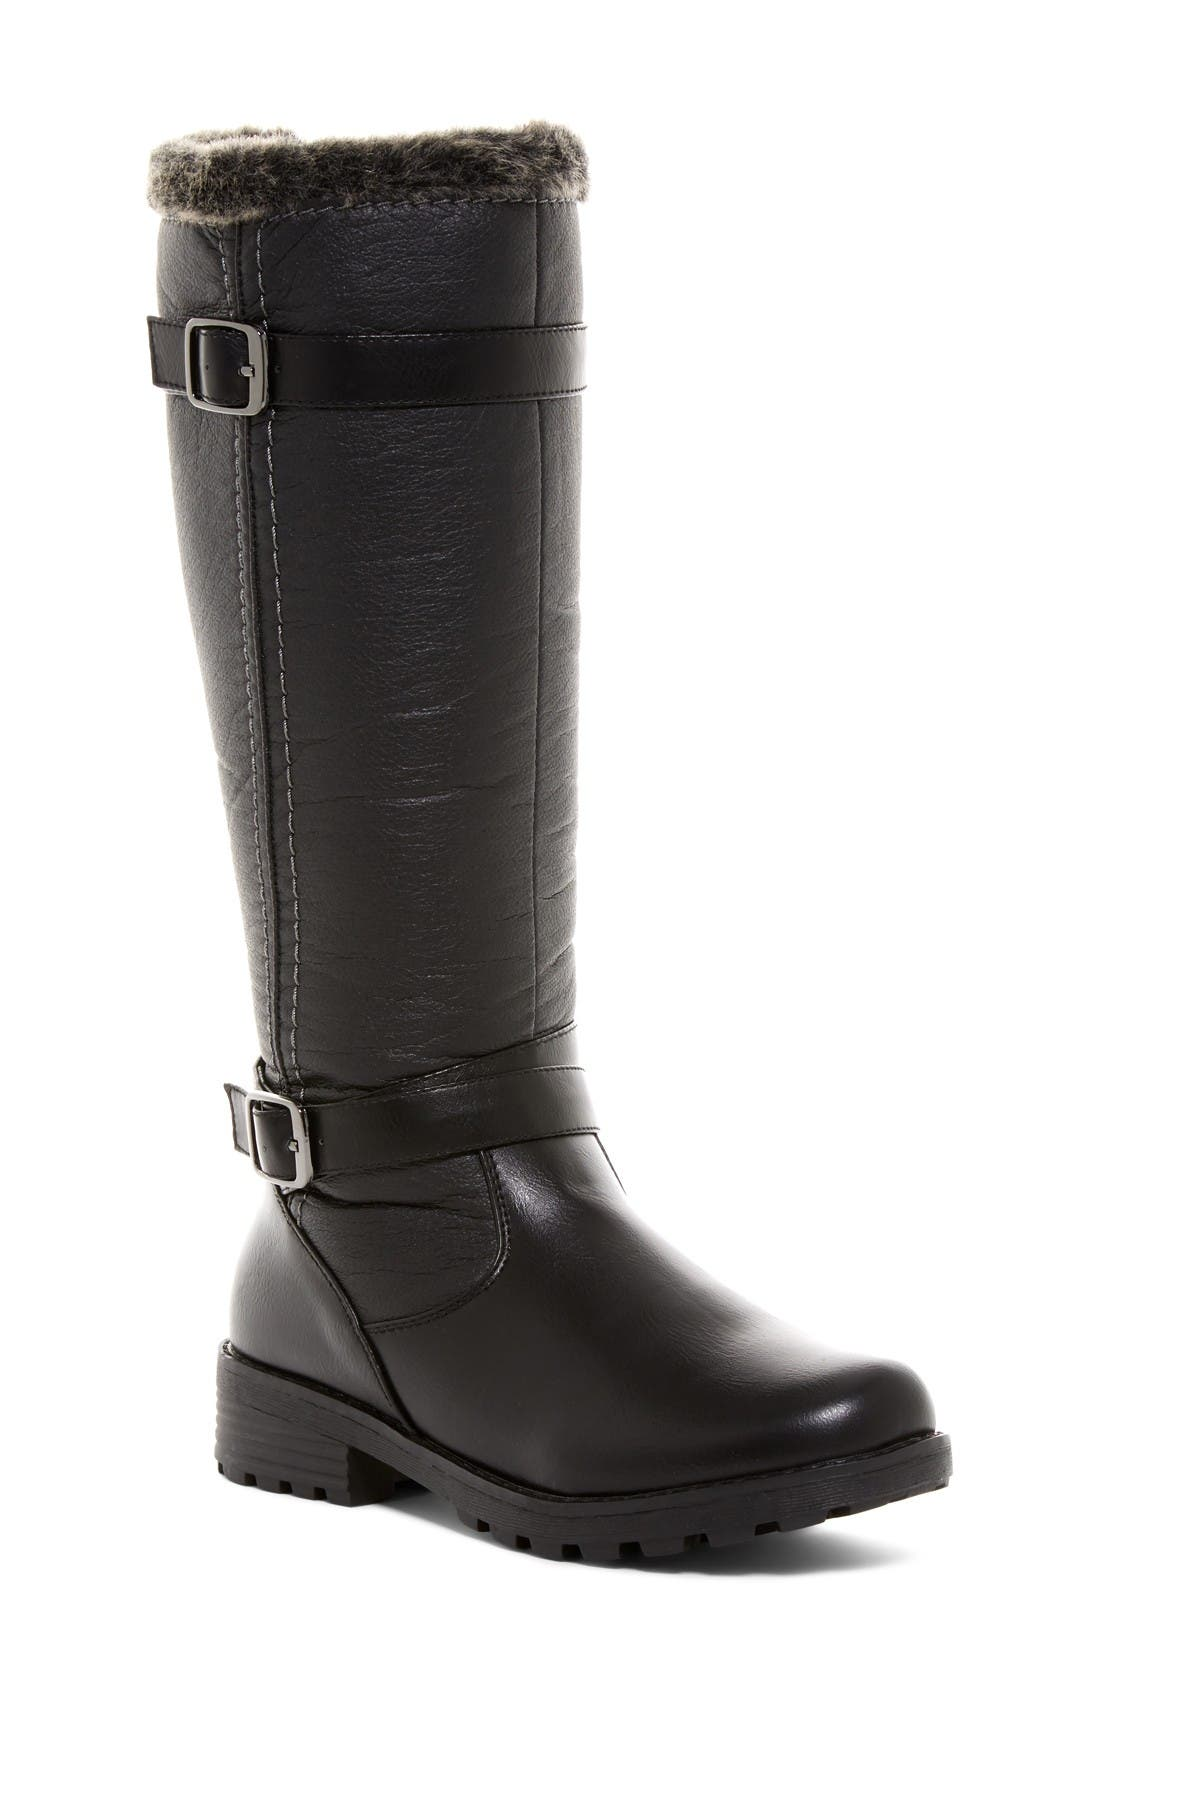 Image of Aquatherm by Santana Canada Blair Waterproof Faux Fur Tall Boot